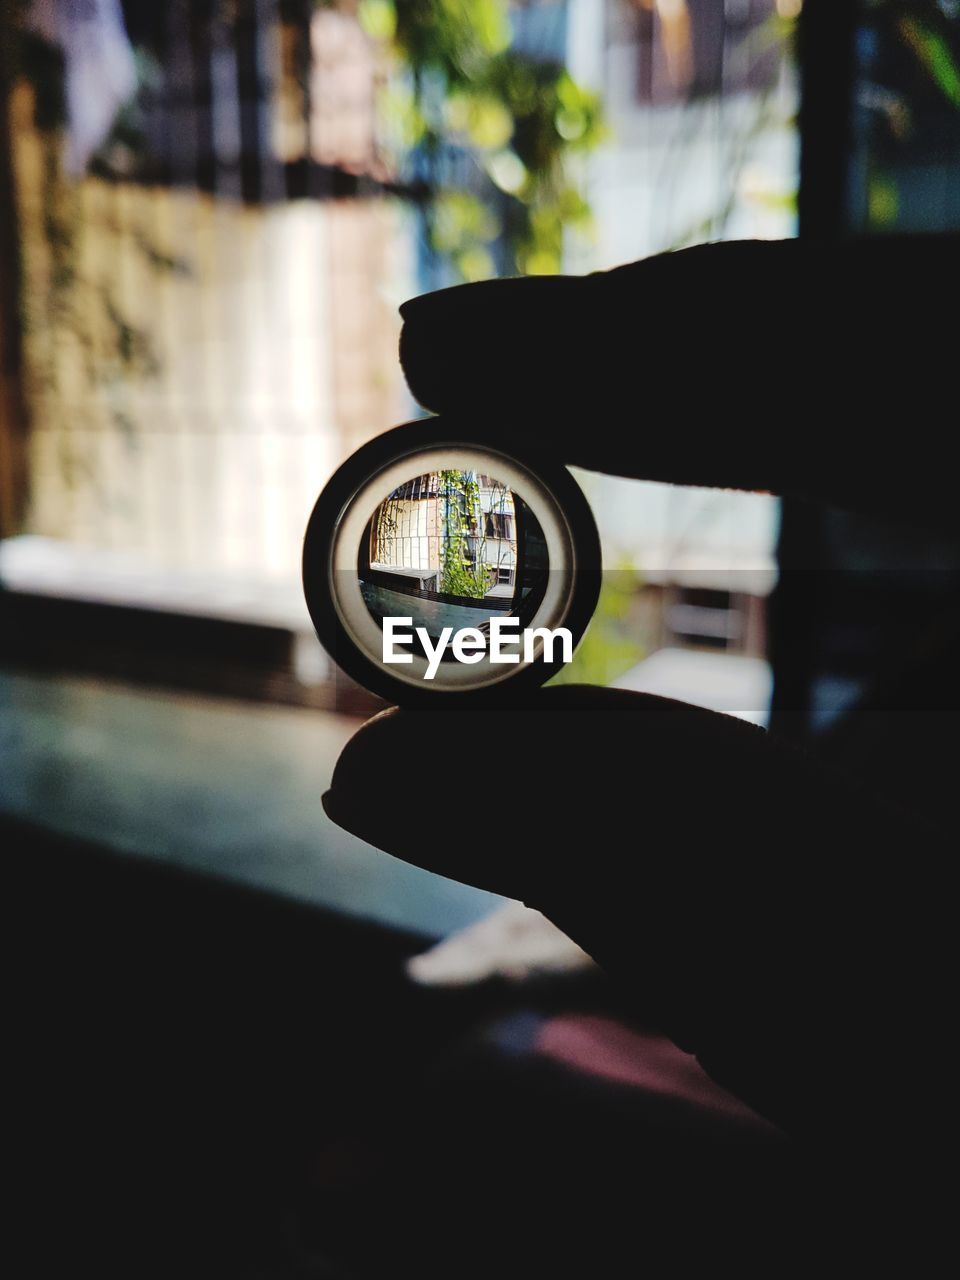 human hand, human body part, close-up, one person, holding, window, real people, focus on foreground, car, day, transportation, photographing, land vehicle, photography themes, indoors, men, technology, camera - photographic equipment, people